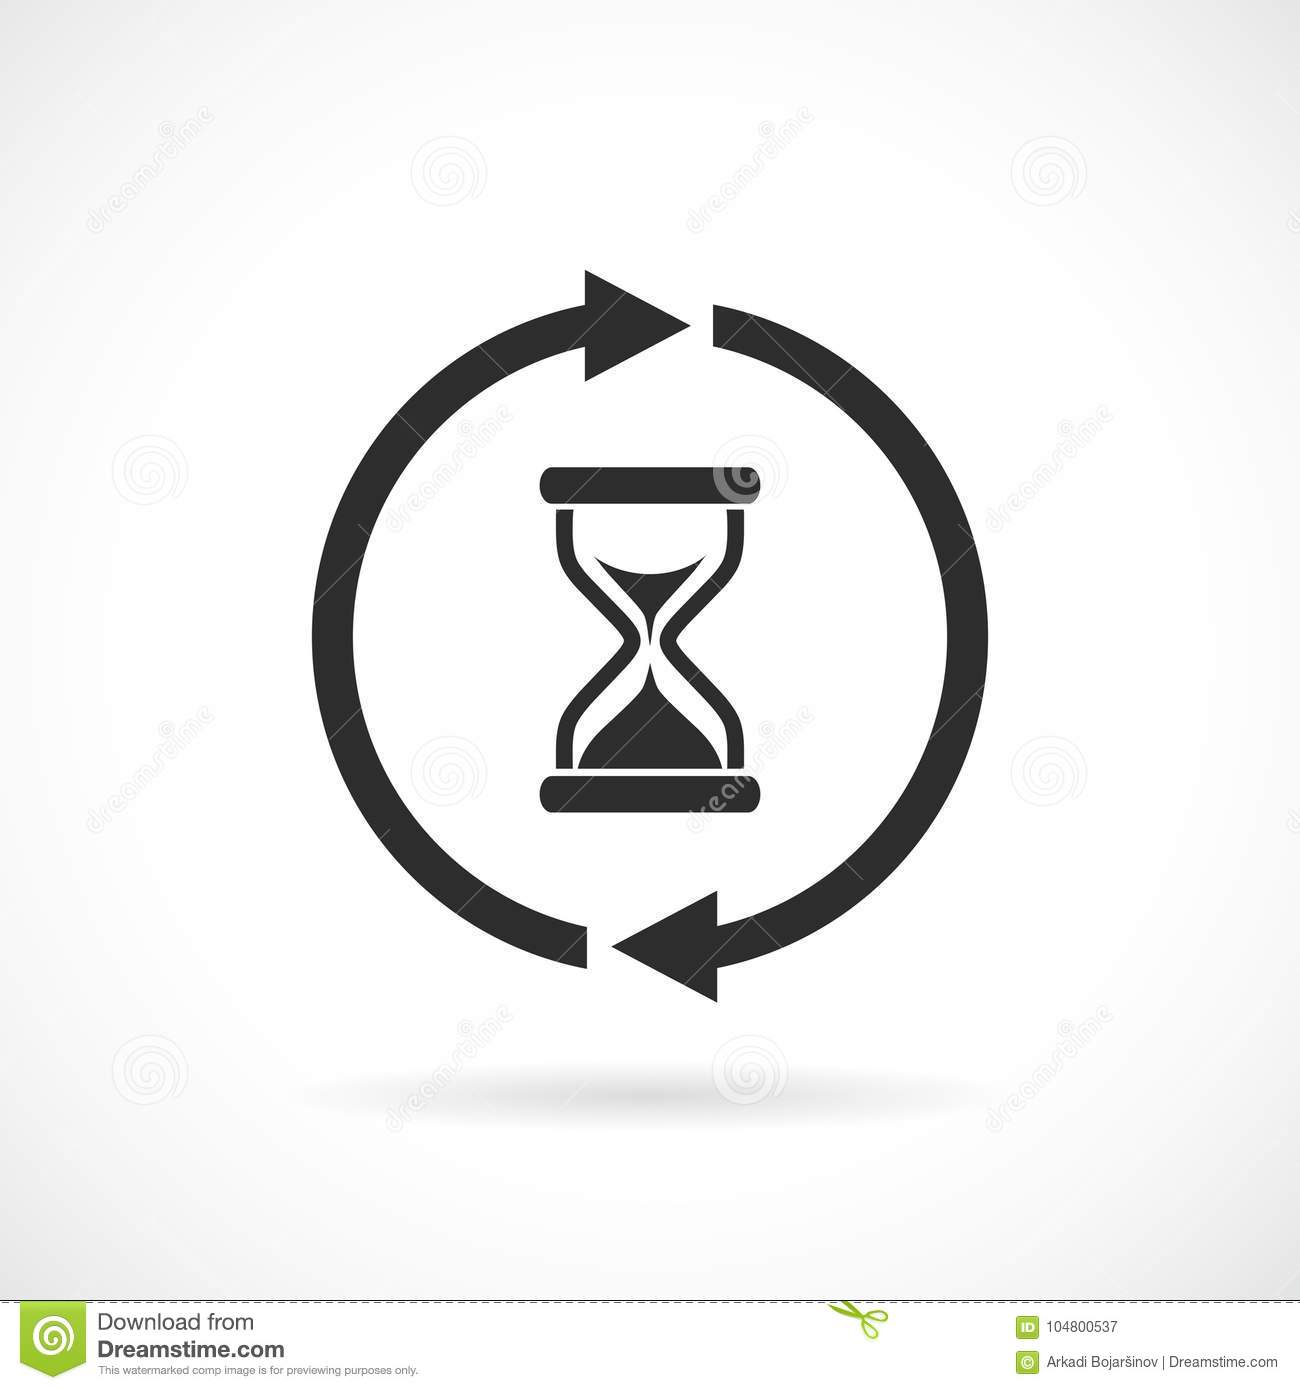 Waiting time web vector pictogram